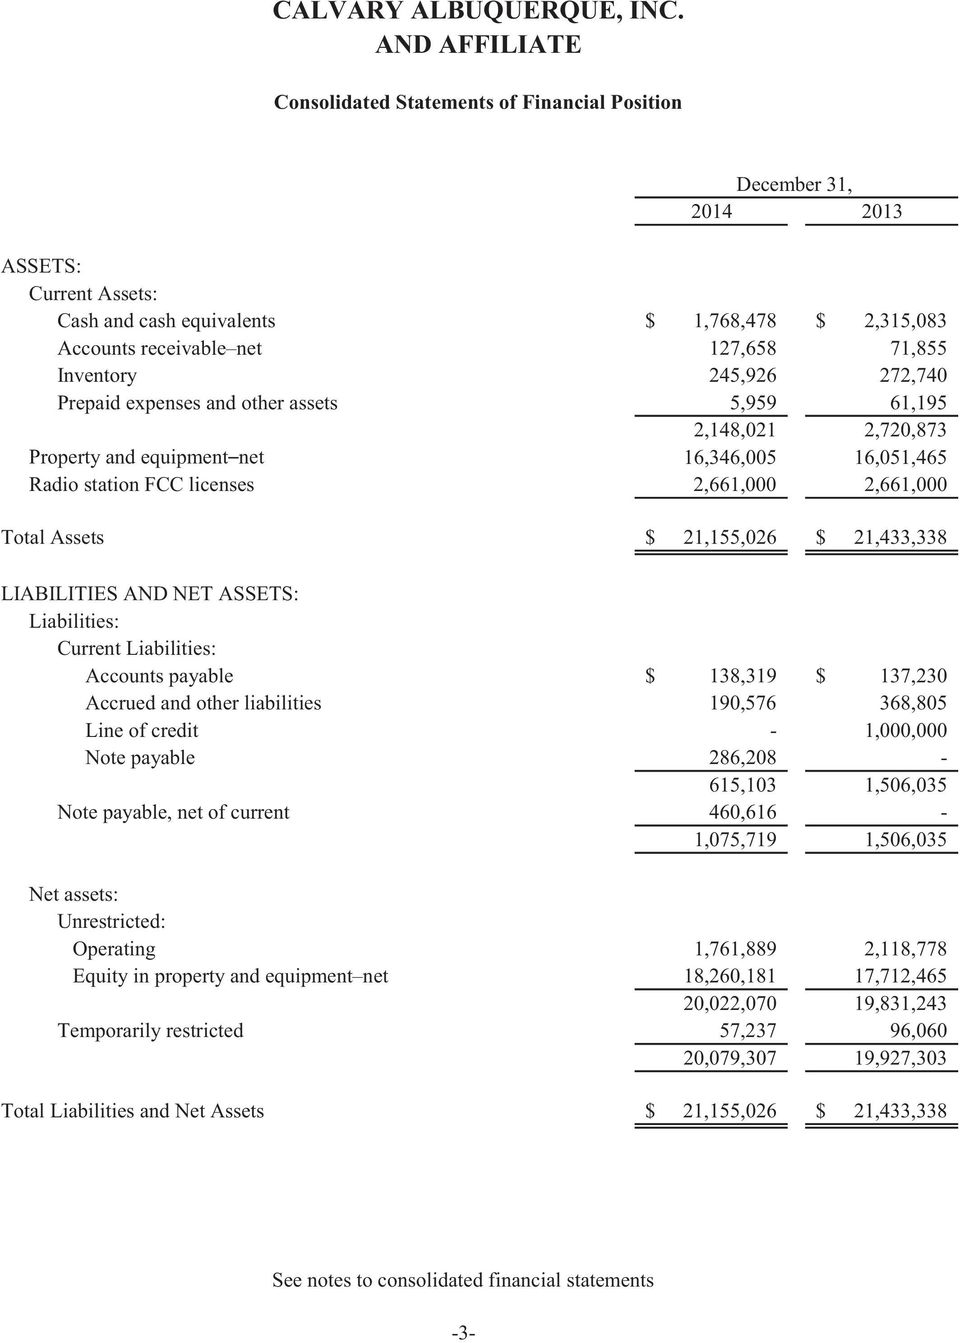 21,433,338 LIABILITIES AND NET ASSETS: Liabilities: Current Liabilities: Accounts payable $ 138,319 $ 137,230 Accrued and other liabilities 190,576 368,805 Line of credit - 1,000,000 Note payable